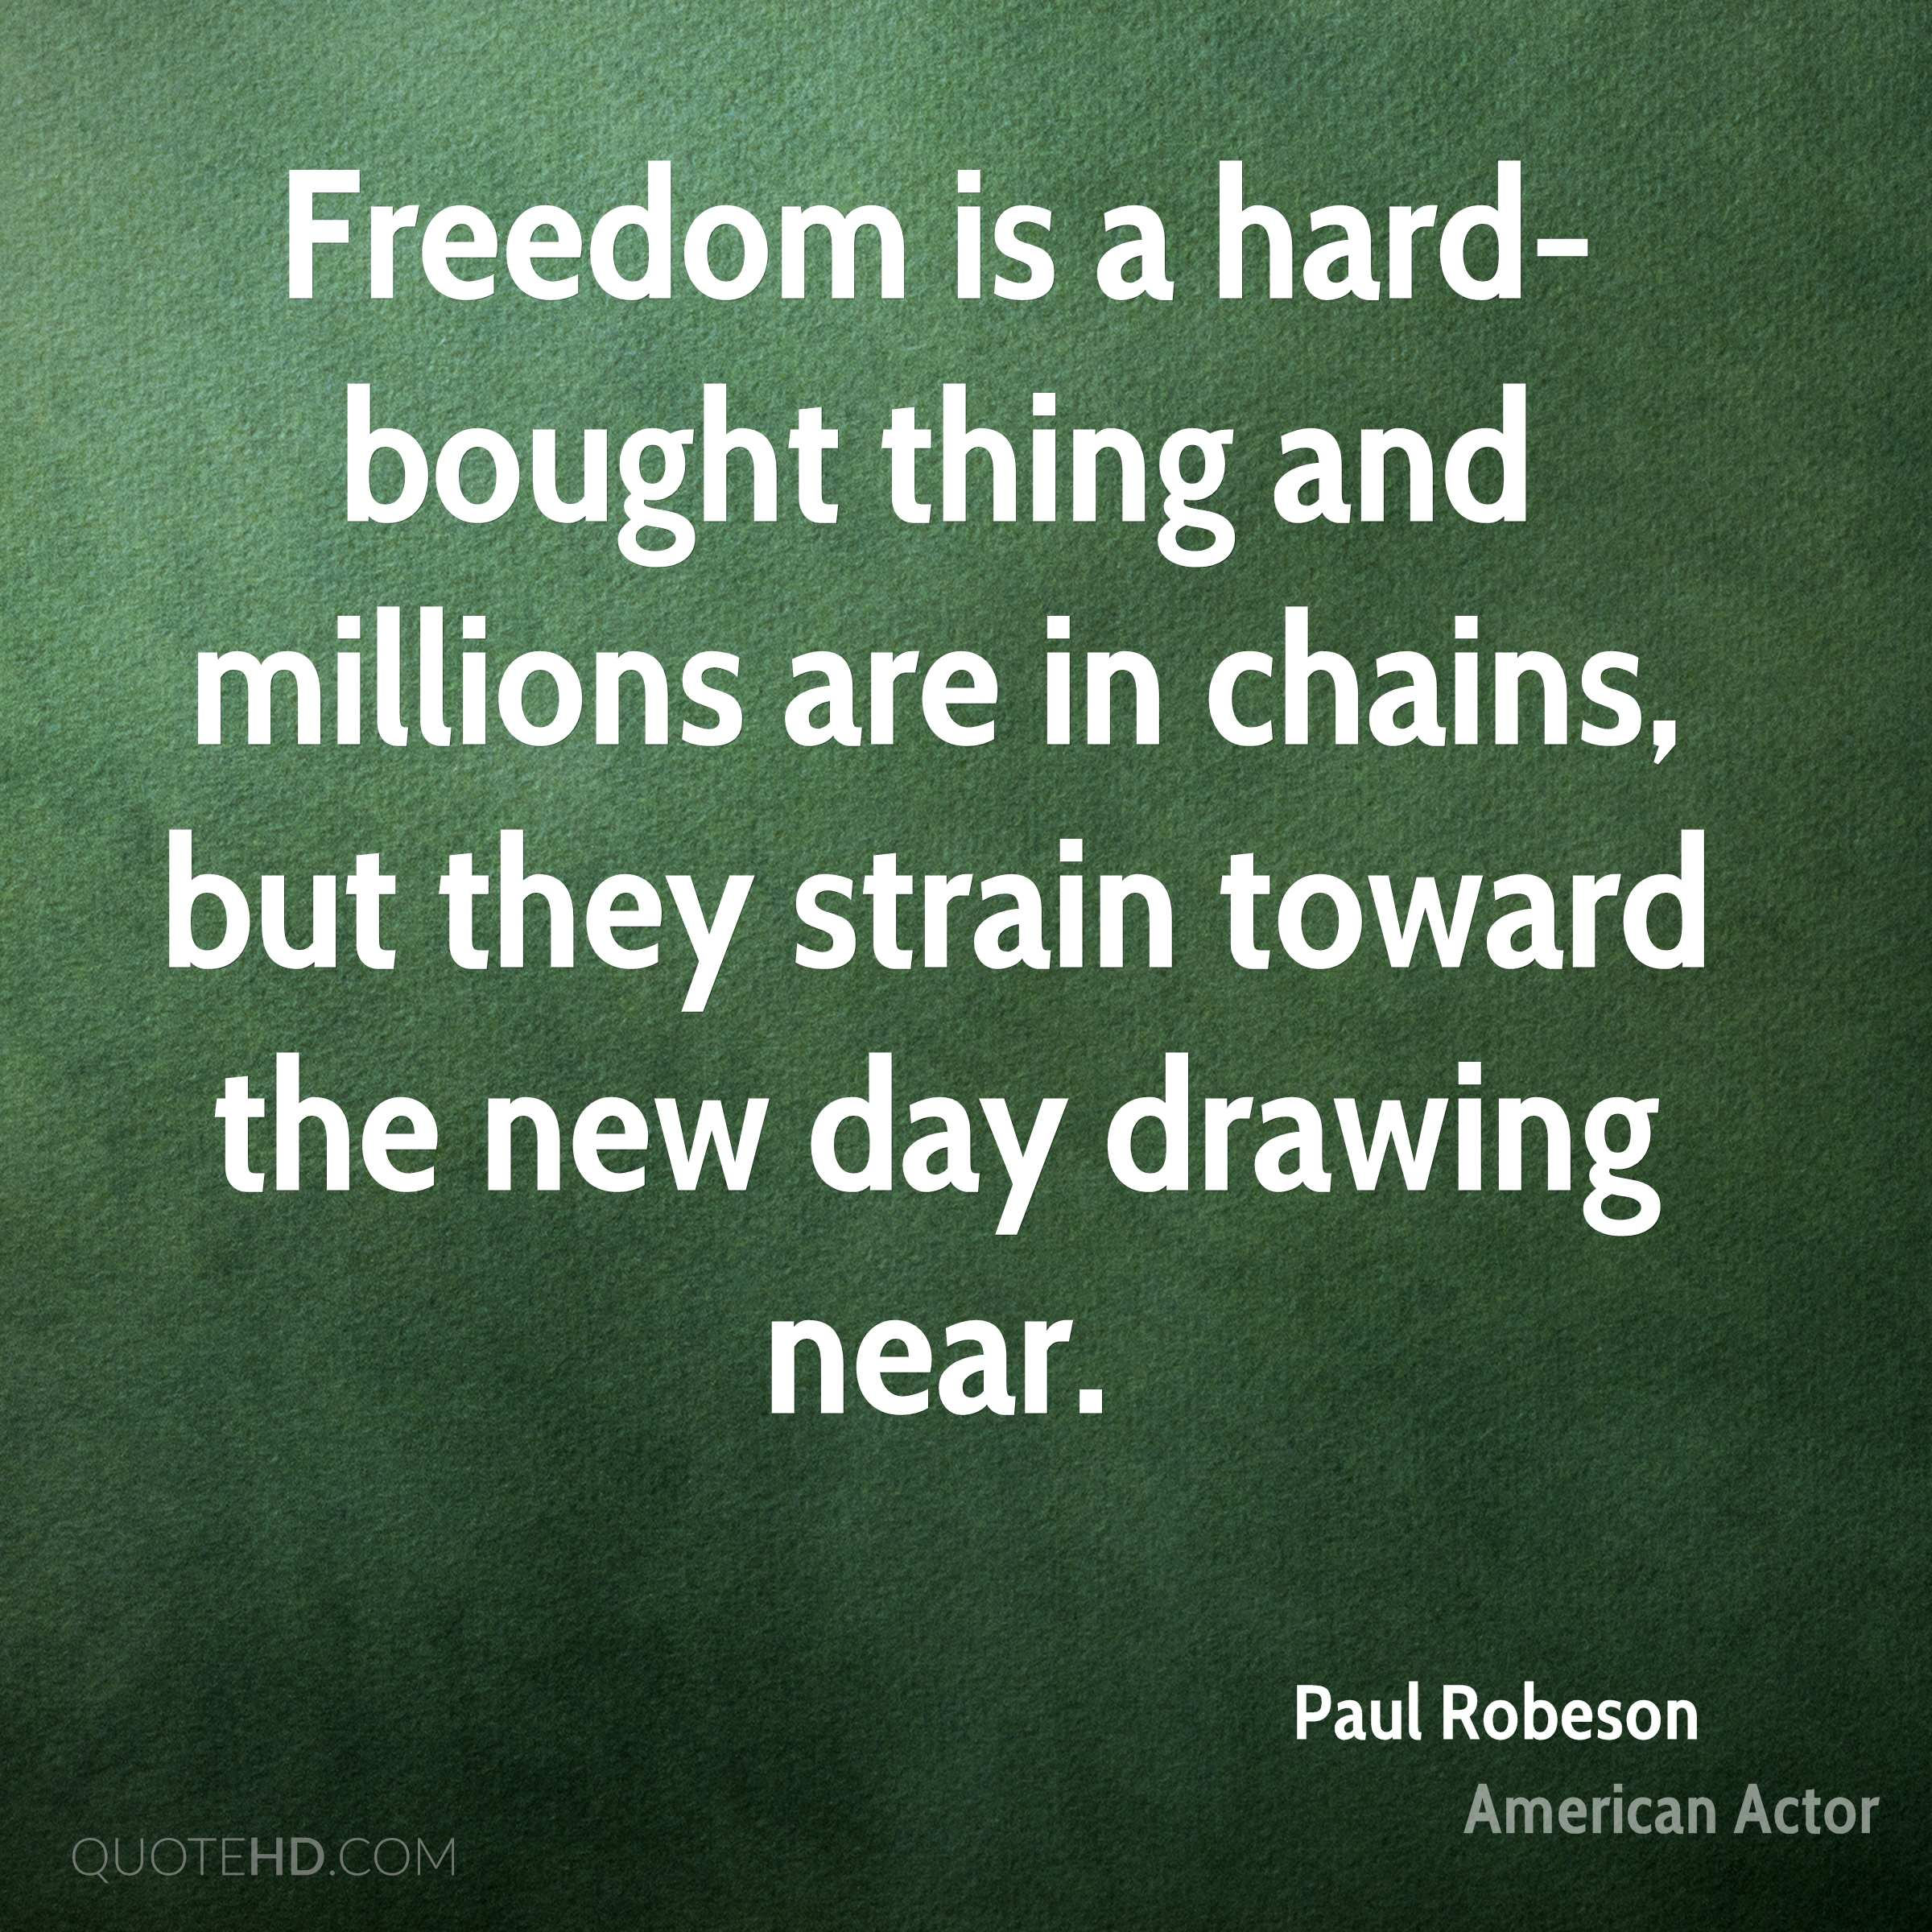 Freedom is a hard-bought thing and millions are in chains, but they strain toward the new day drawing near.